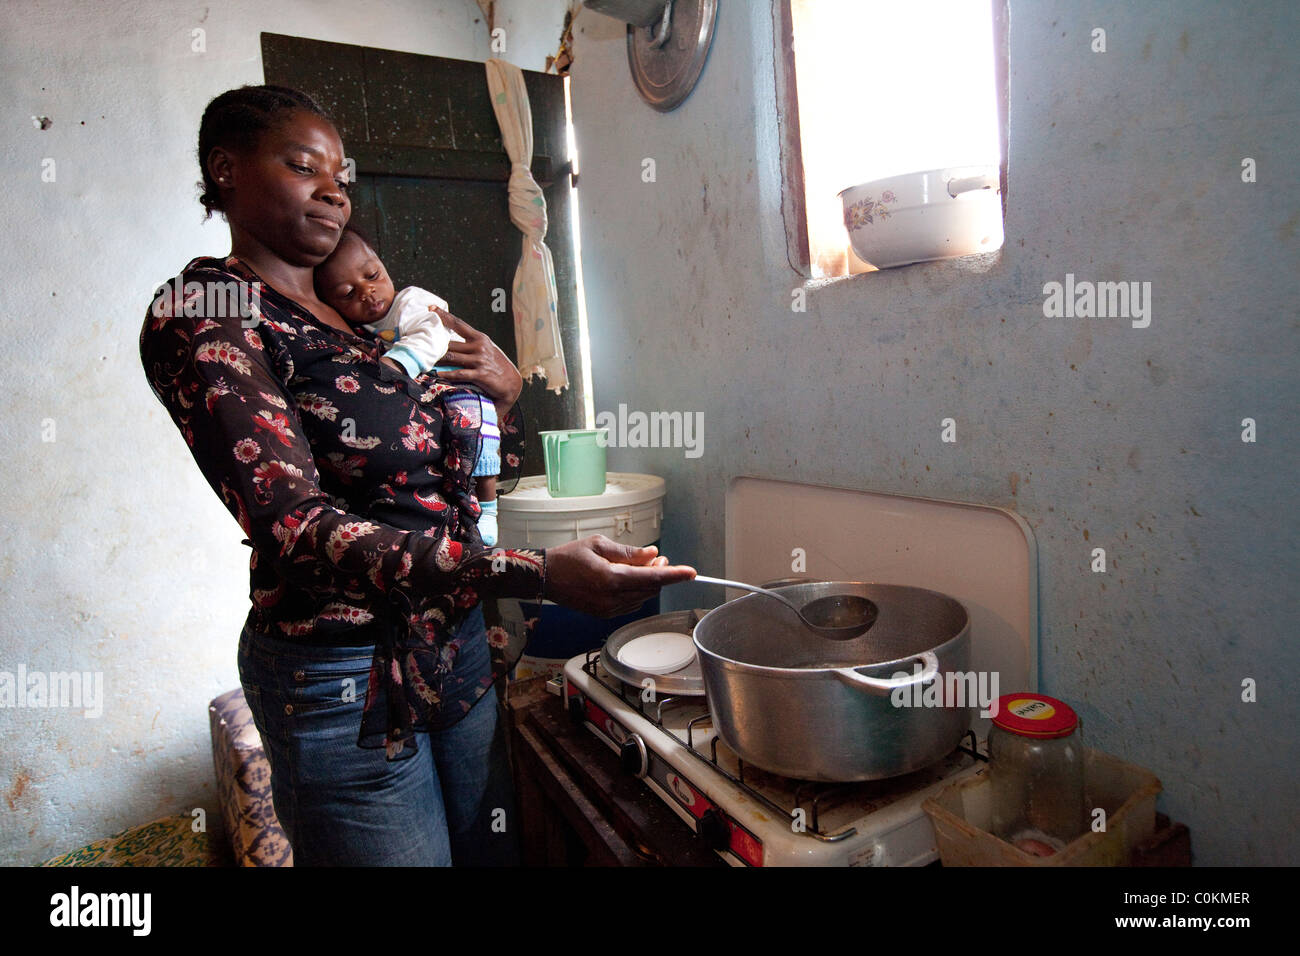 A single mother holds her 3 month old baby boy while cooking at her home in Yaounde, Cameroon, West Africa. - Stock Image